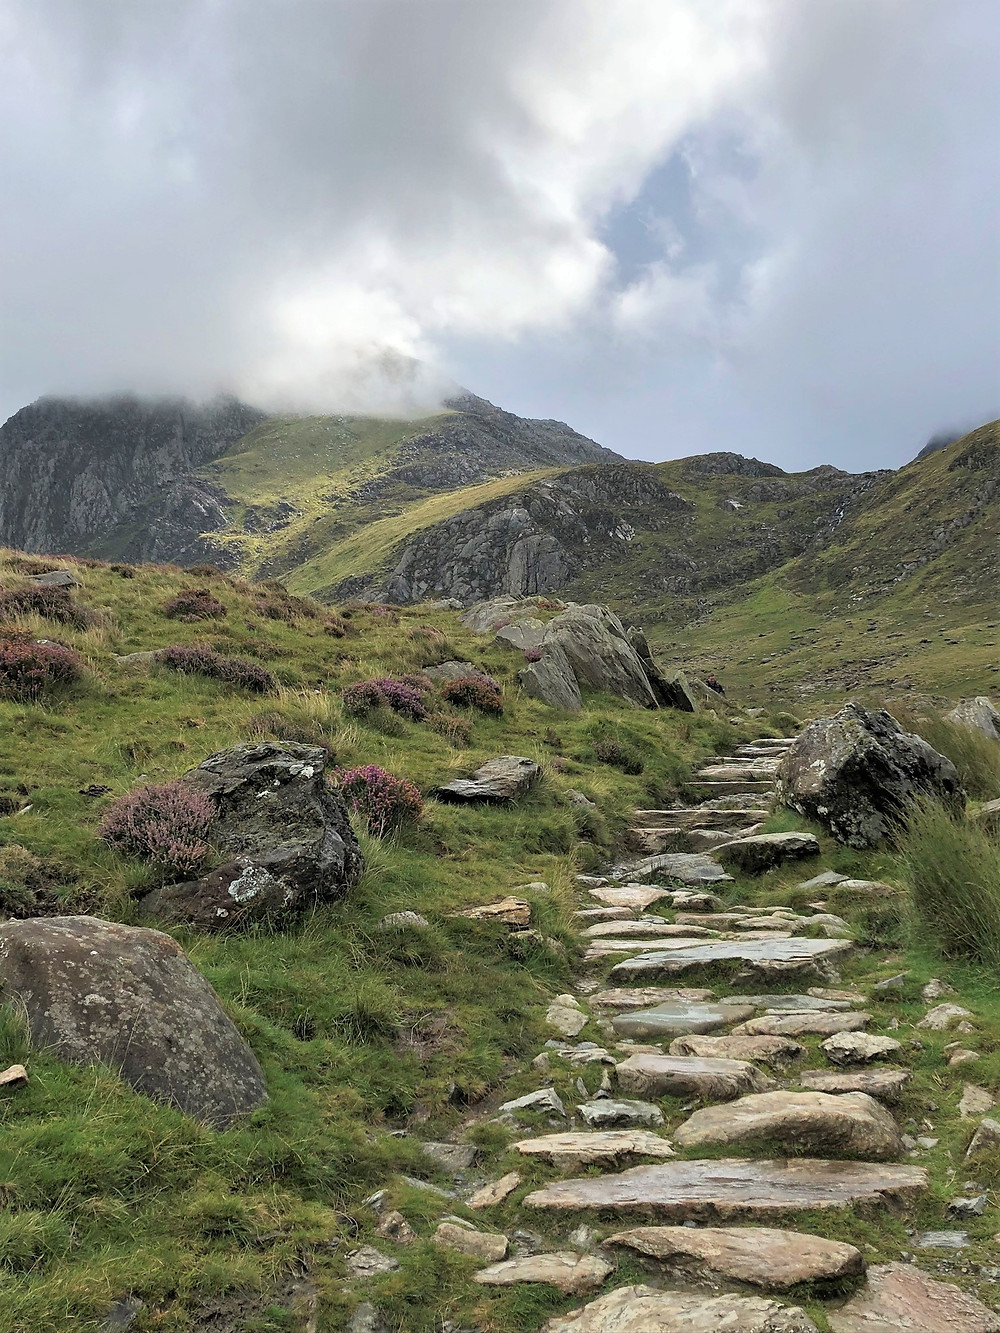 A well marked path led from the Ogwen cottage and car park to Llyn Idwal on the trail leading to Devil's Kitchen in Snowdonia